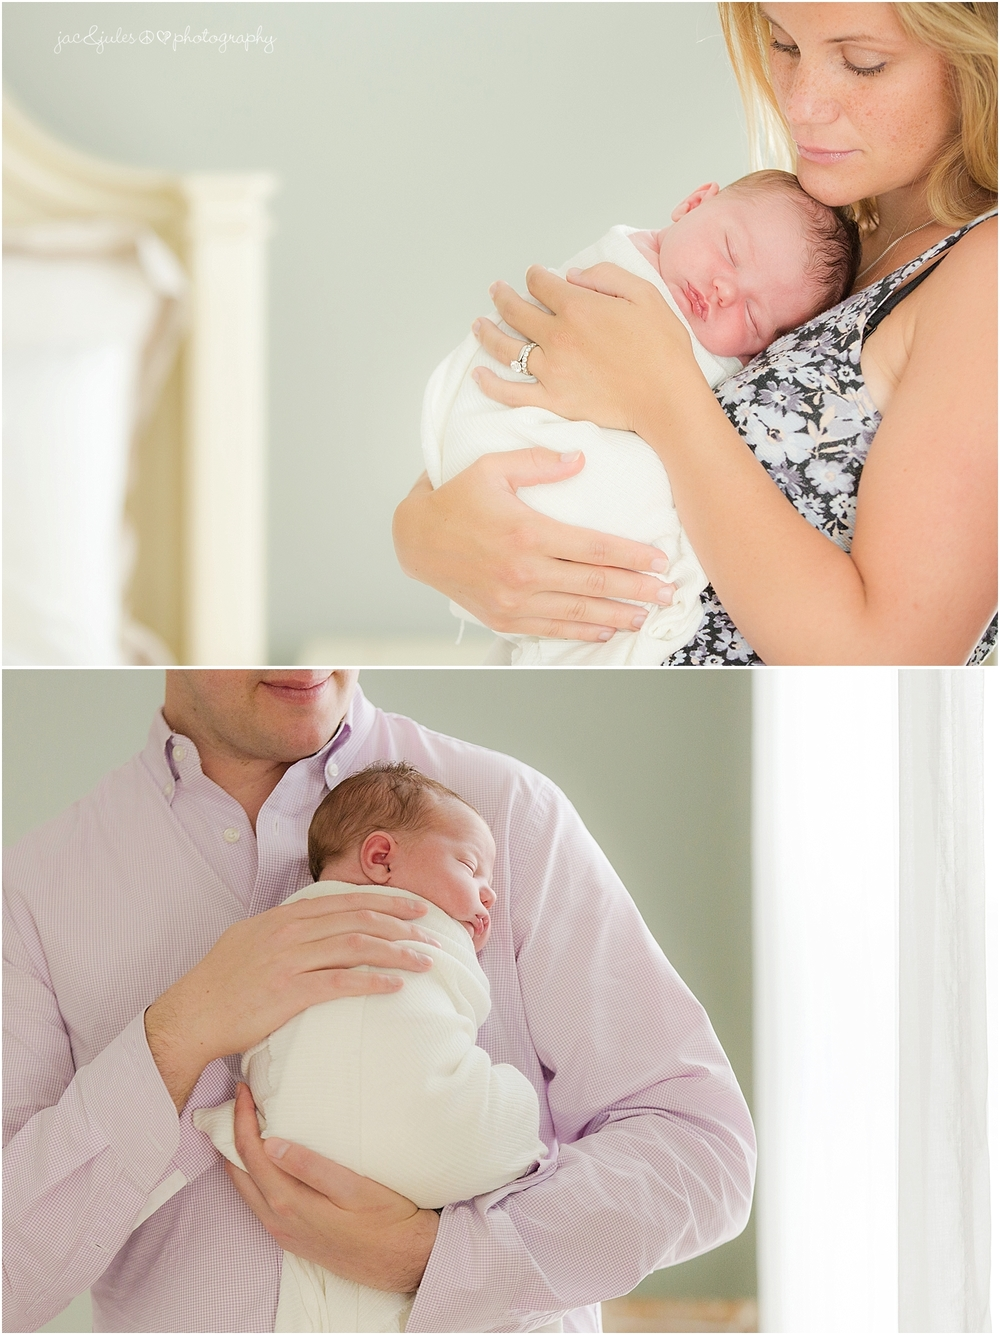 jacnjules photographs newborn baby boy and his parents in their home in toms river nj